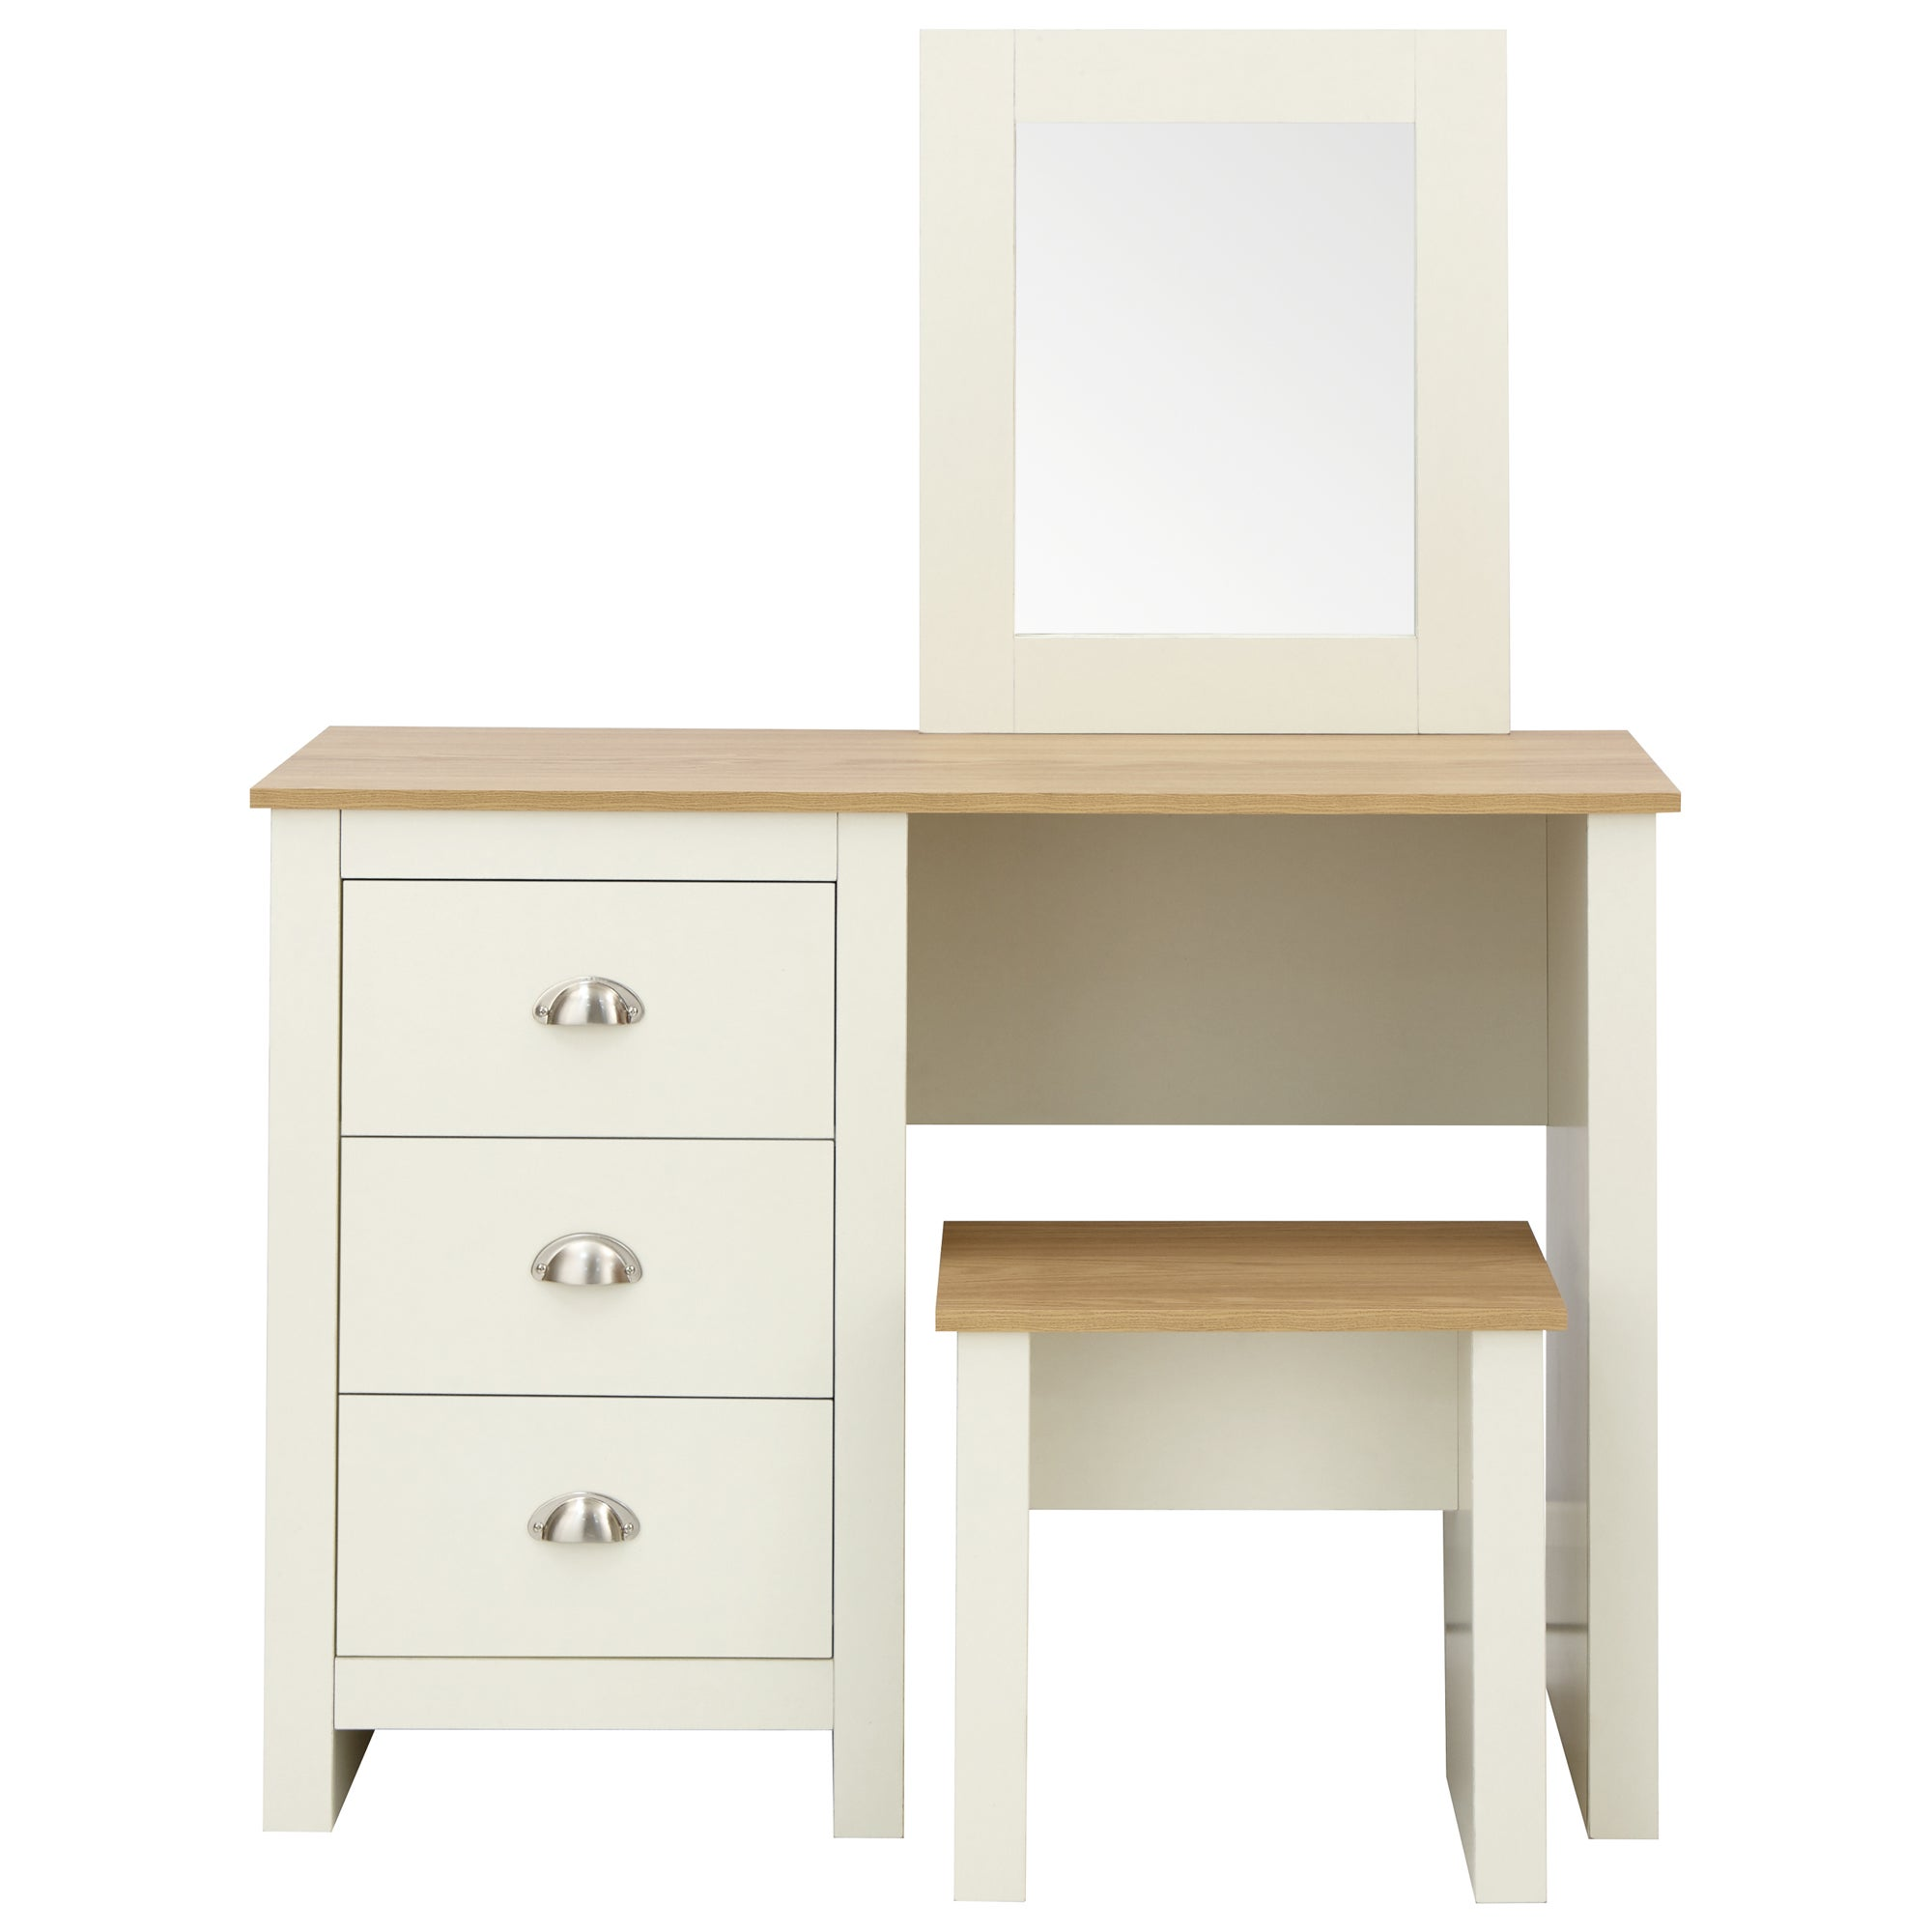 Lancaster Dressing Table Set Cream and Brown